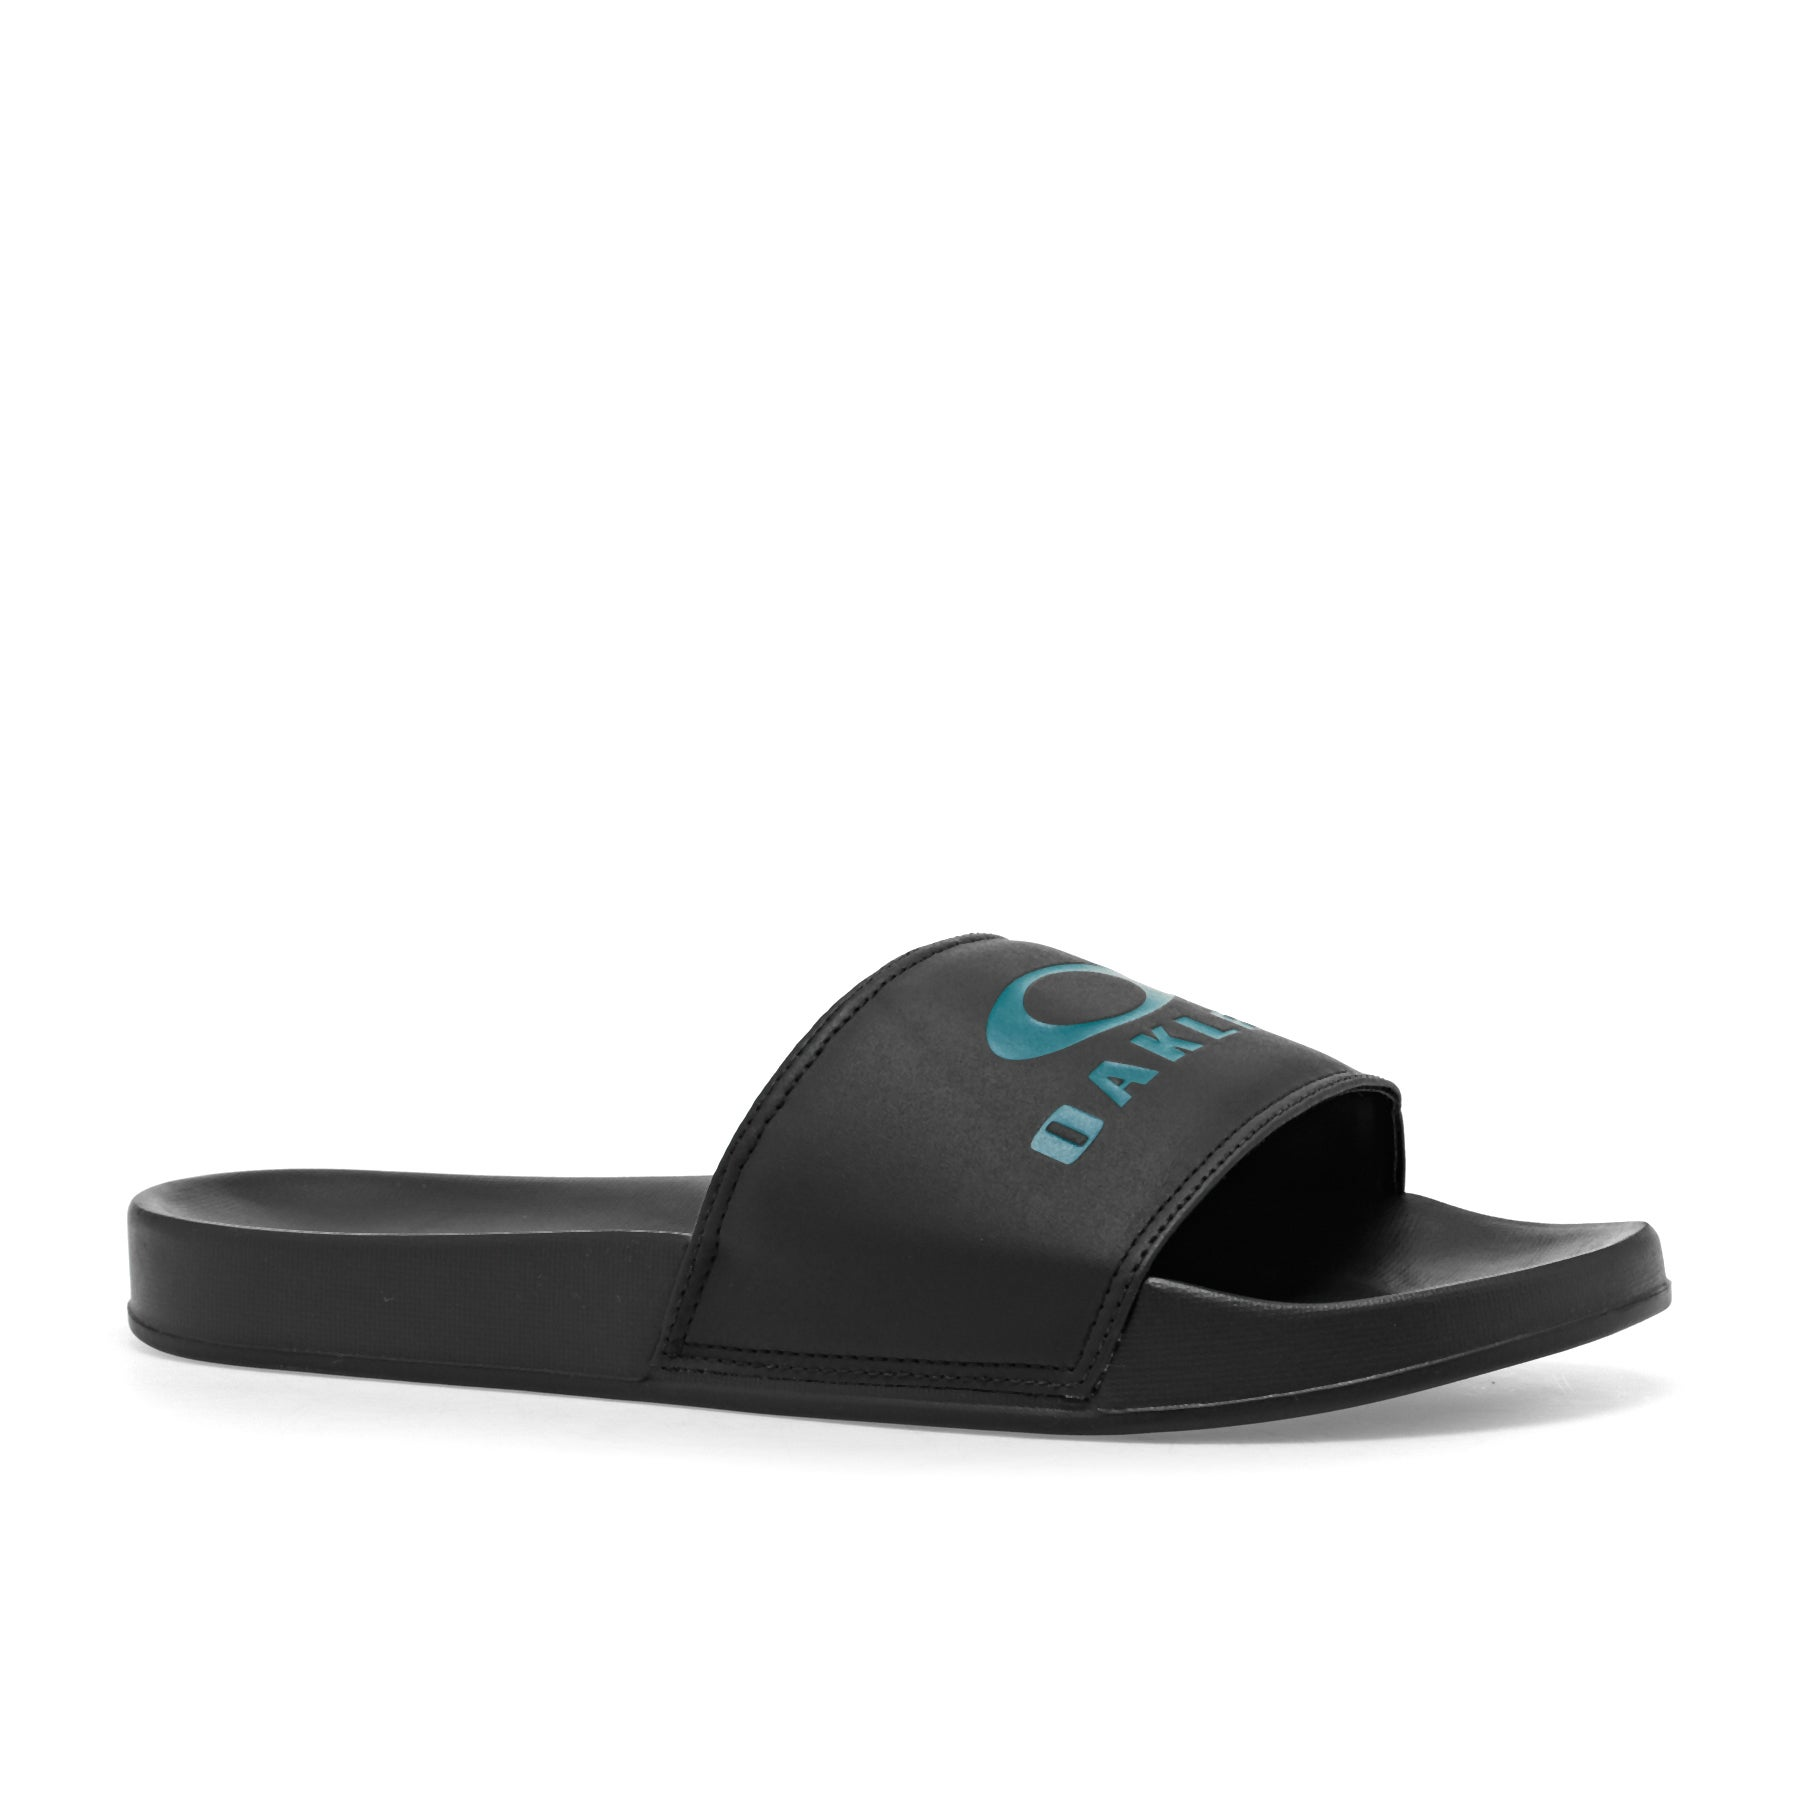 Oakley Ellipse Slide Sandals